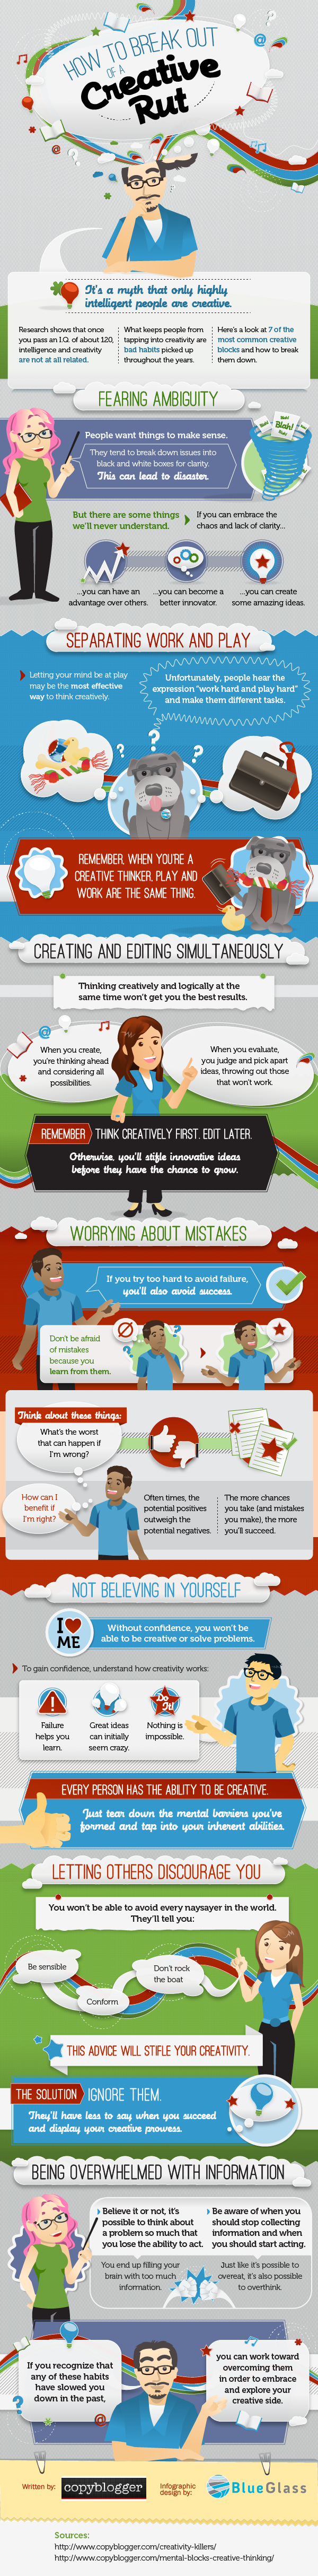 How to Be Creative - #infographic